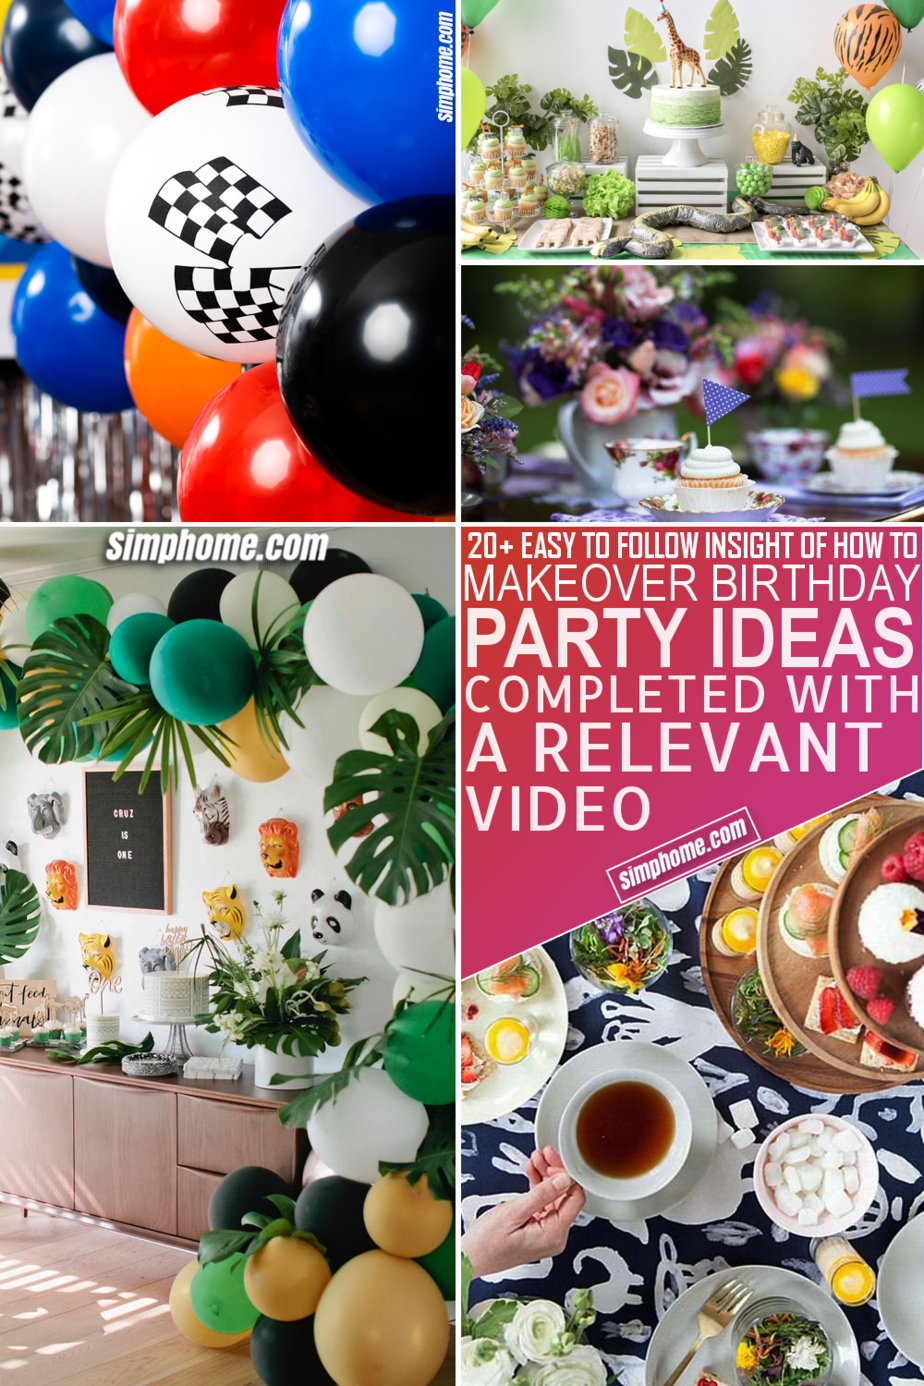 10 Ideas how to makeover birthday parties by Simphome.com Featured Image